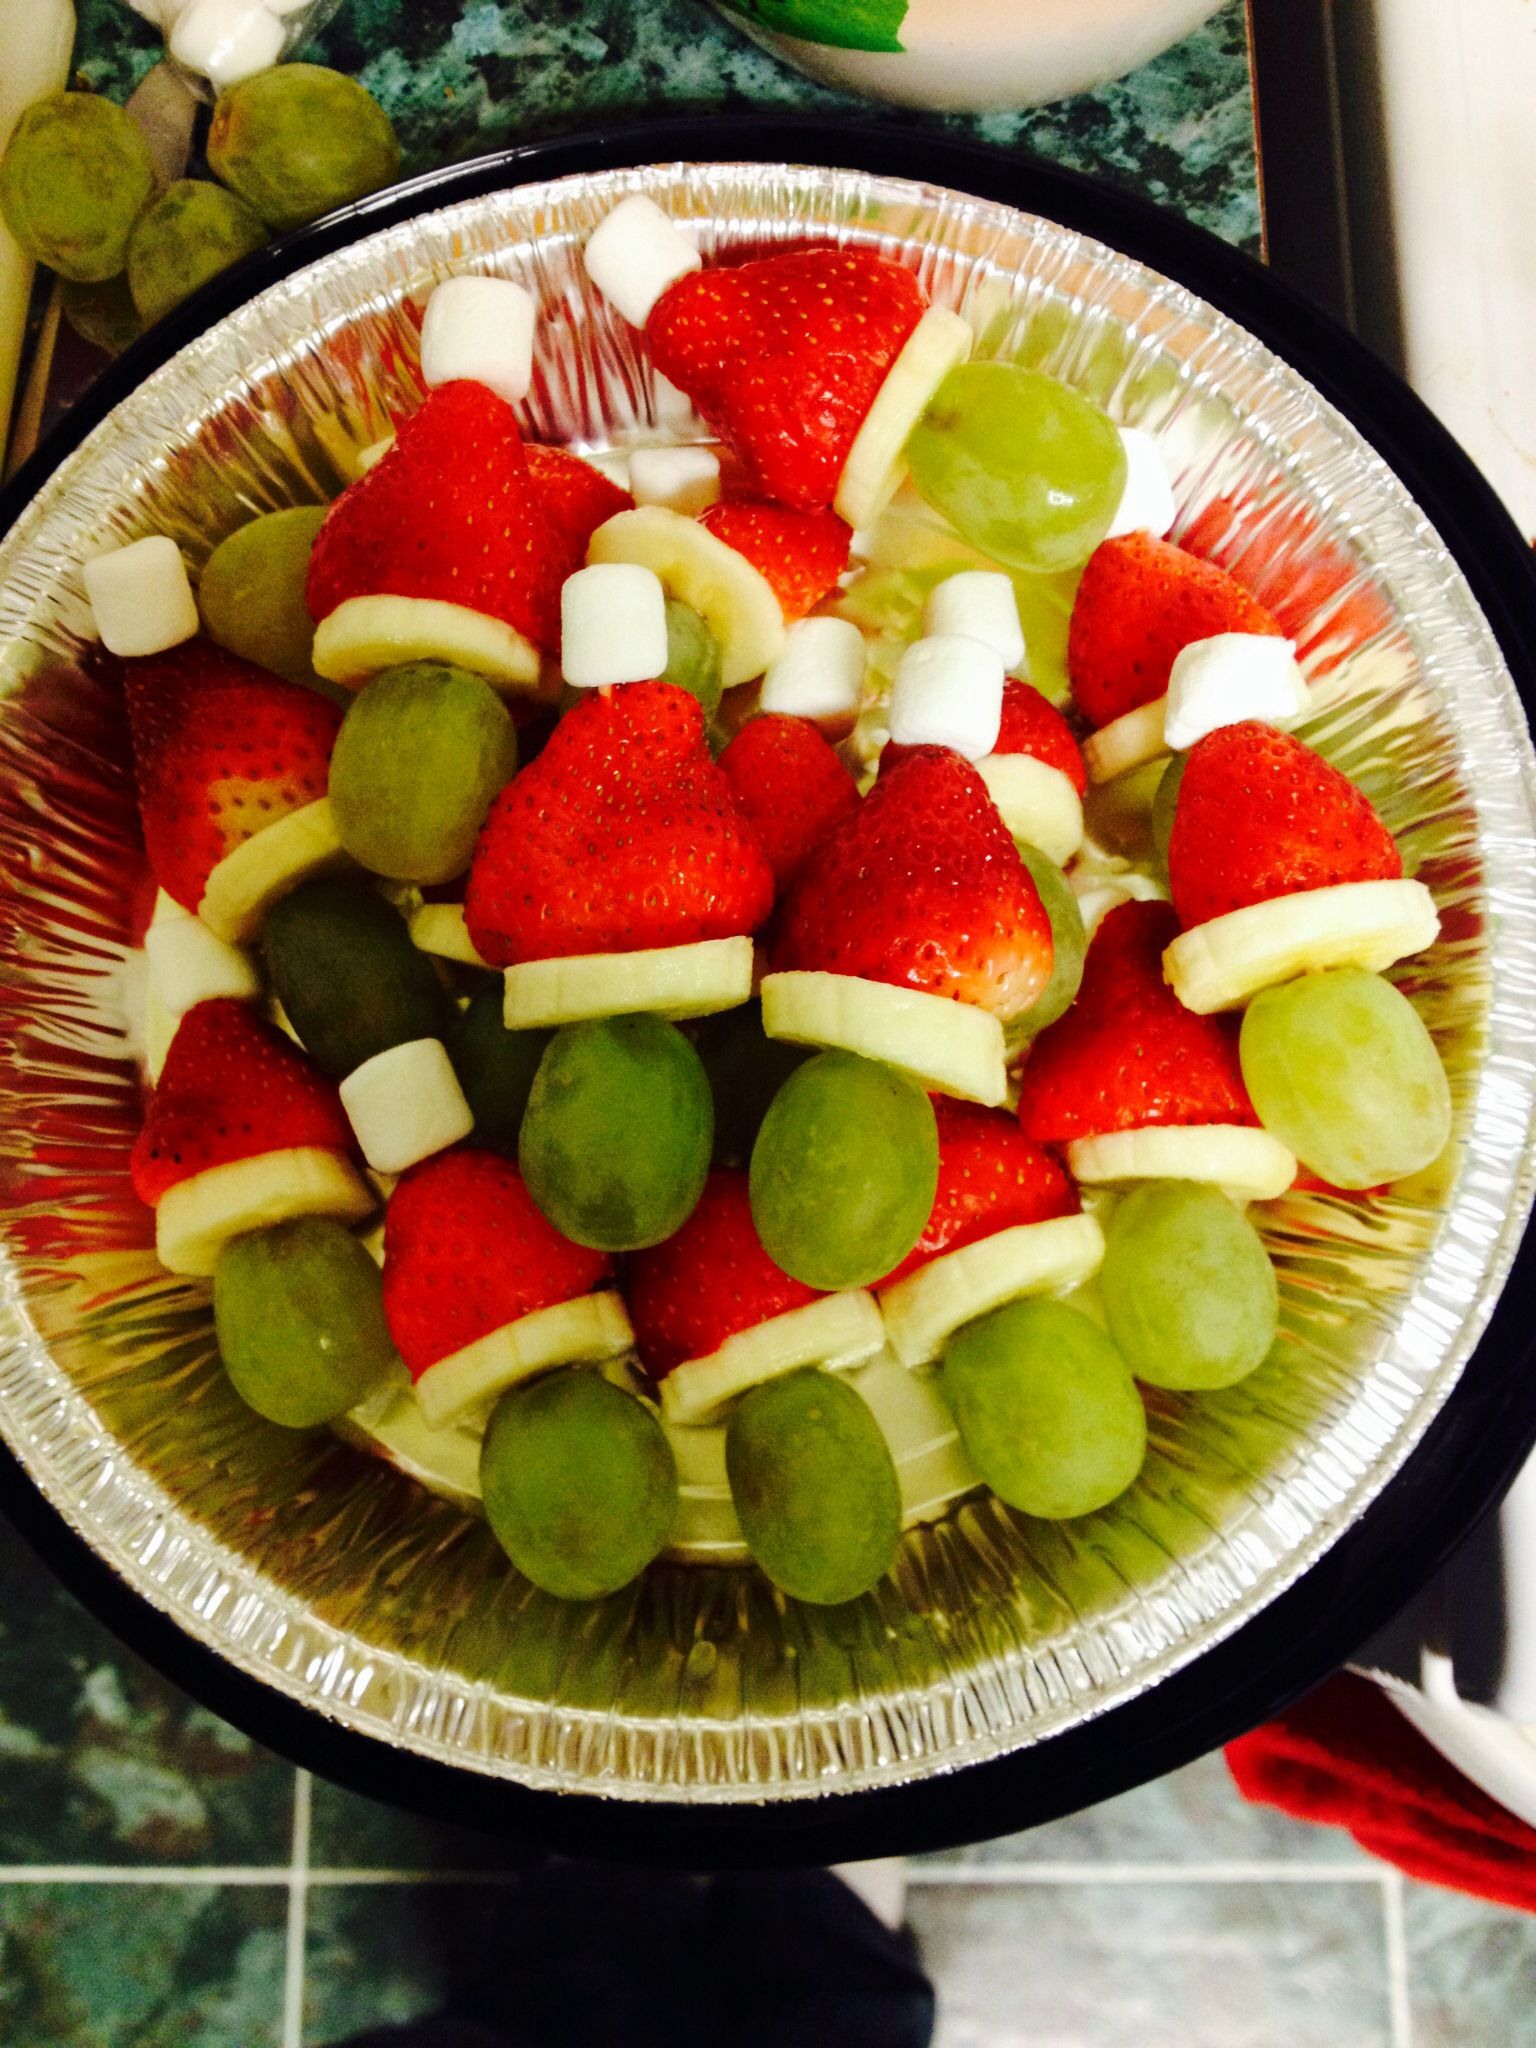 Grinch kabobs- soak the banana slices for a few minutes in orange juice and they will not brown for a few hours in the fridge!